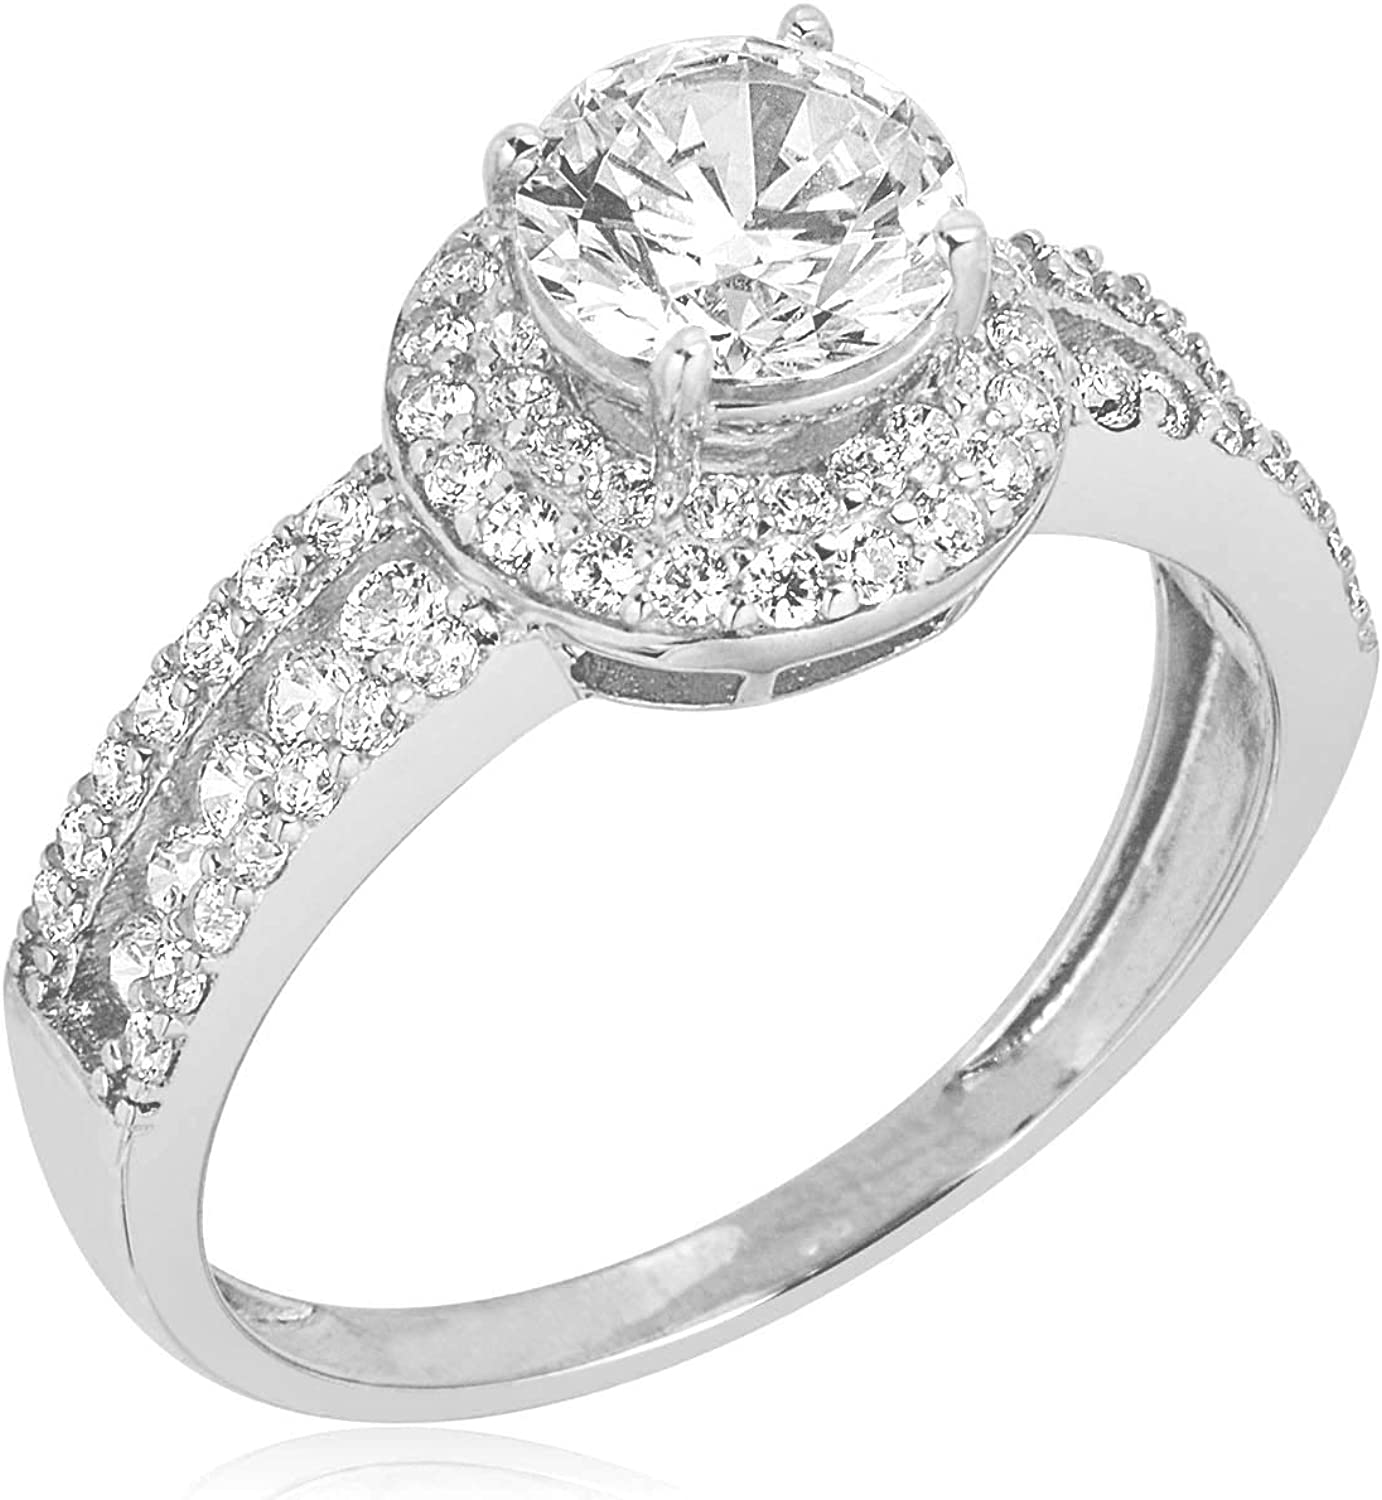 Avora 10k White Gold 1 25 Carat Simulated Diamond Cz Double Frame